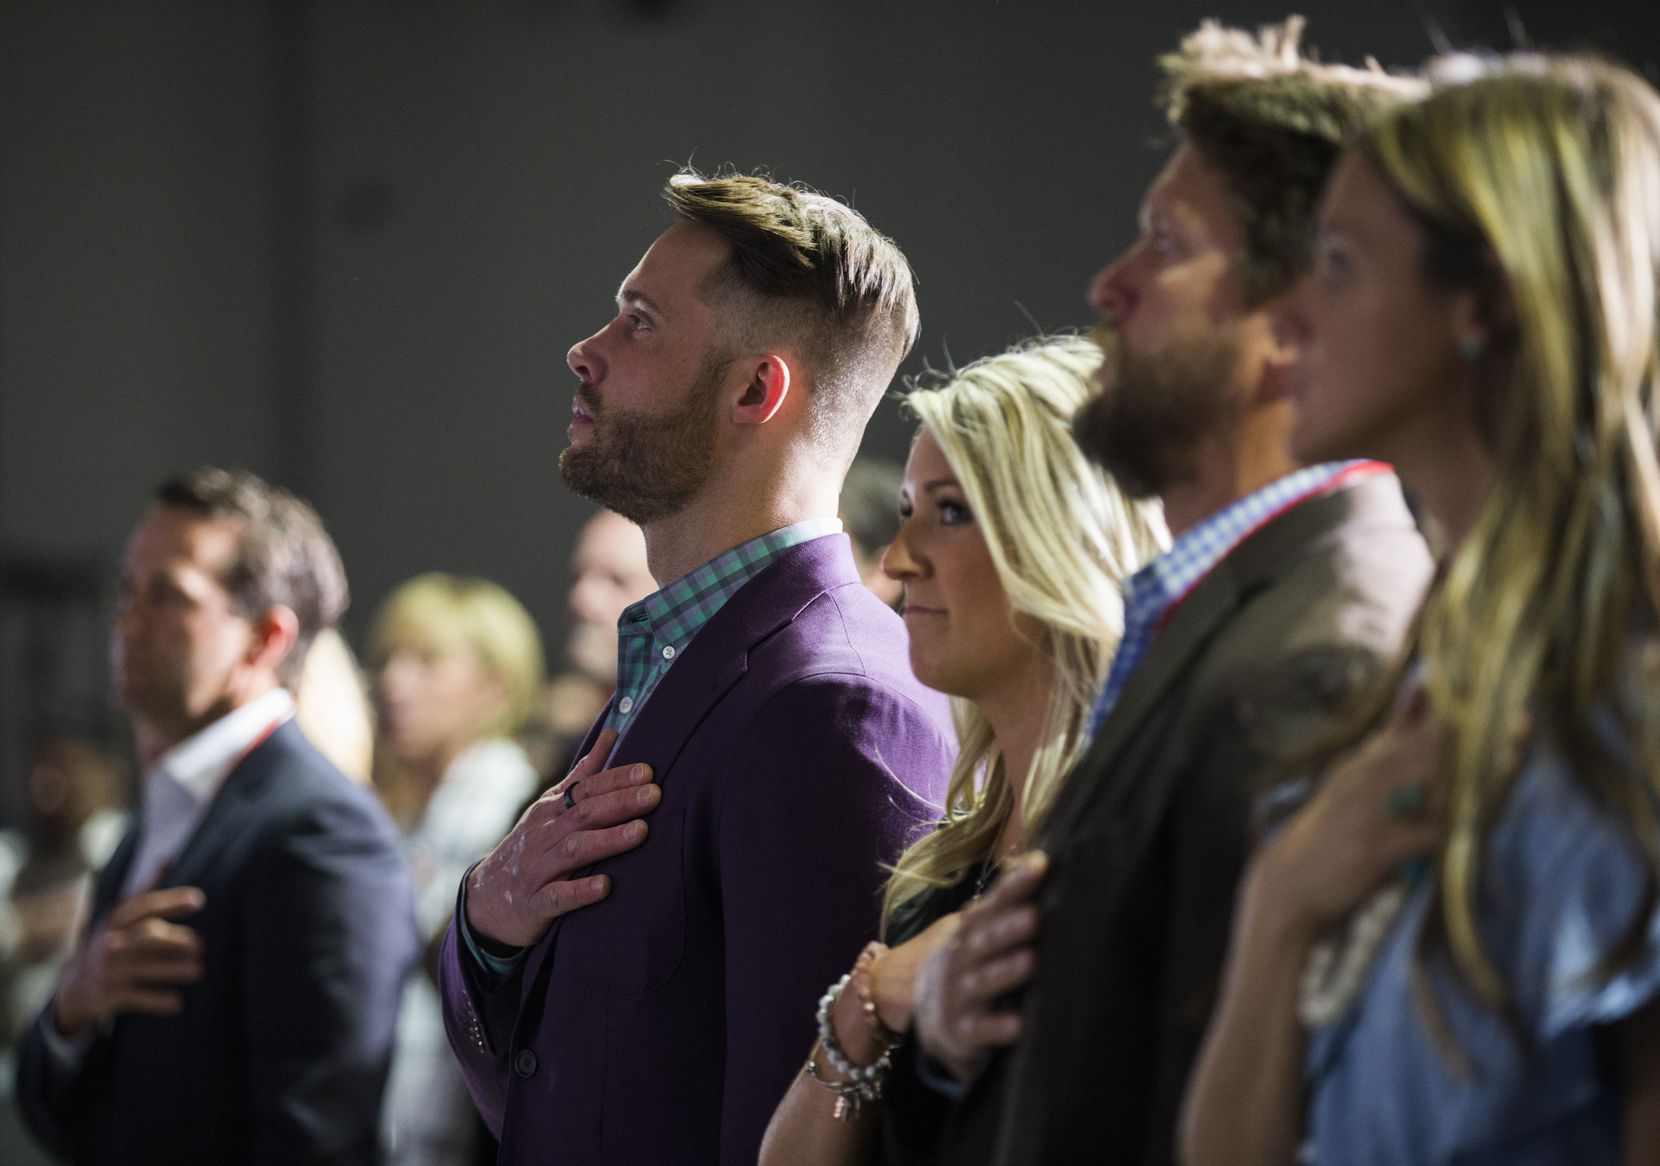 Founder and owner David Vobora places his hand over his heart as the national anthem plays during the opening of the Adaptive Training Foundation nonprofit gym and rehabilitation facility.